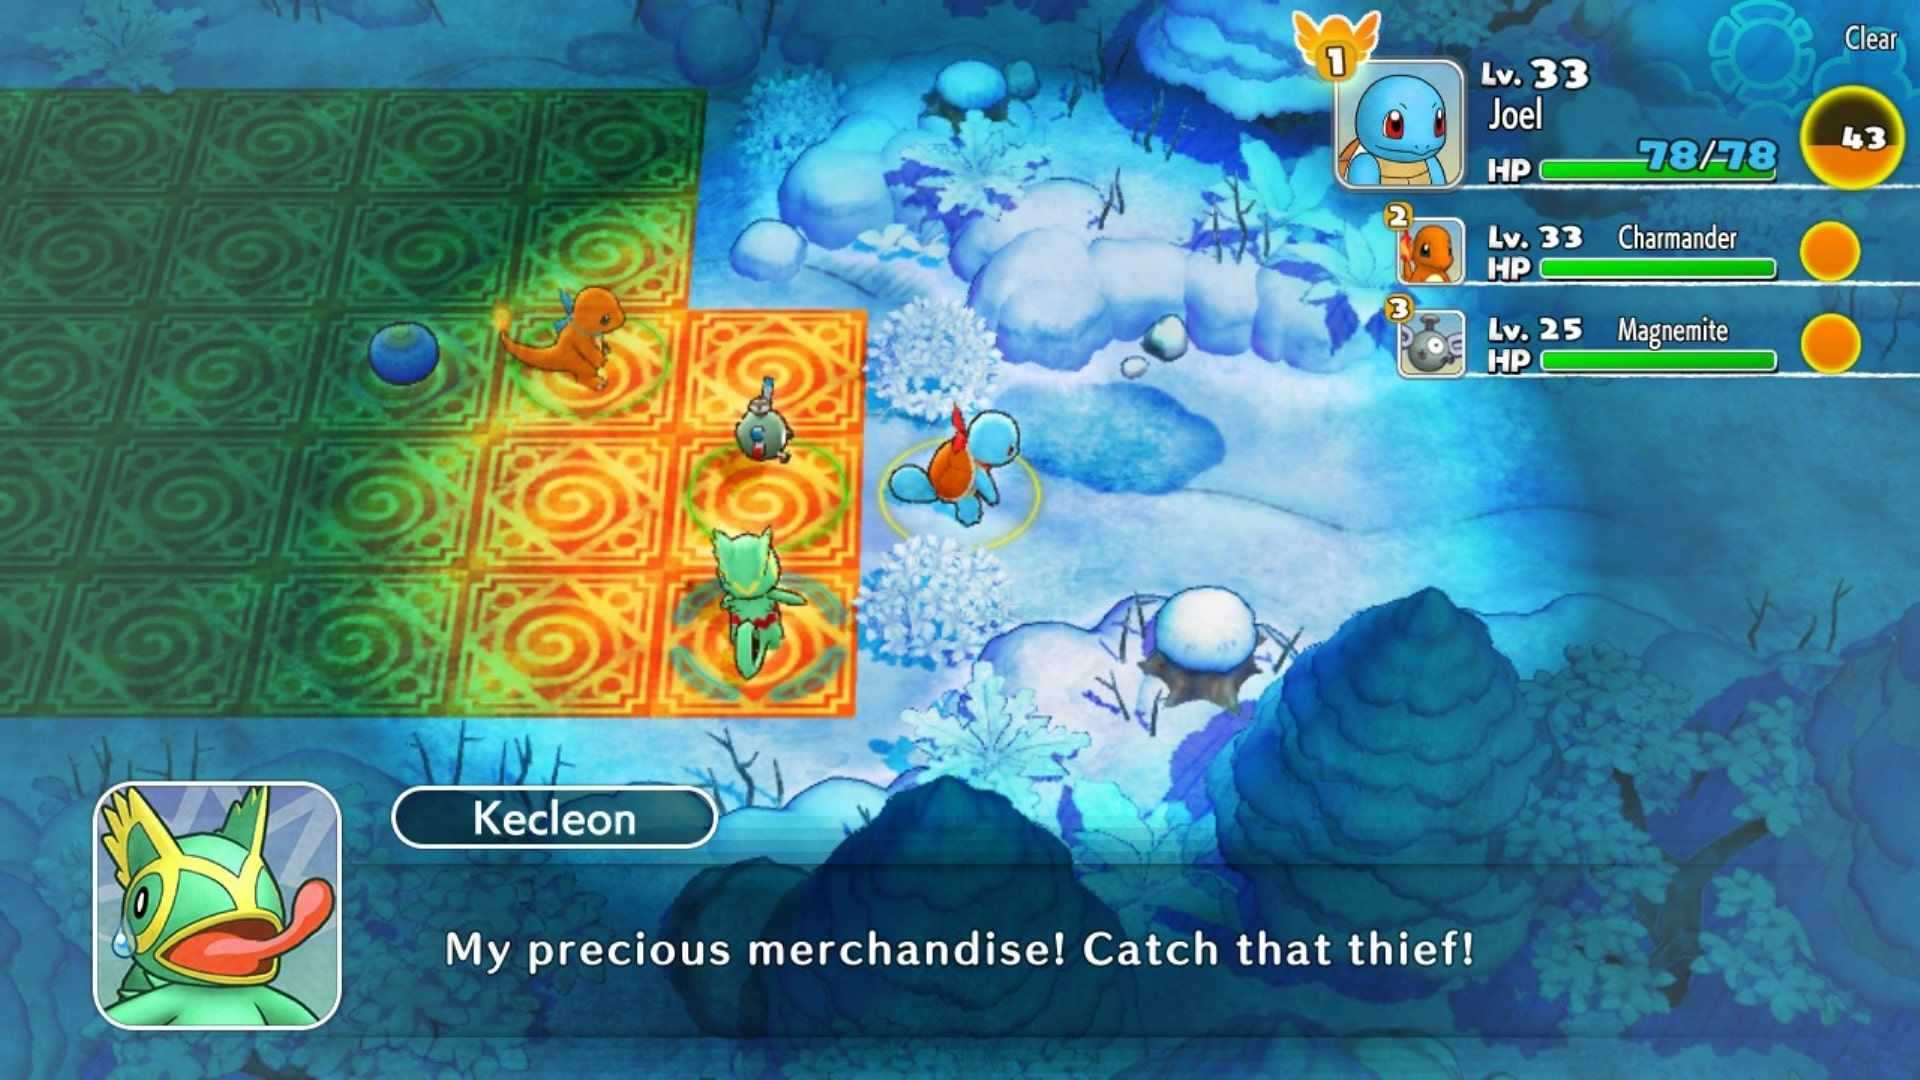 https://www.gamesource.it/trucchi/pokemon-mystery-dungeon-dx-come-reclutare-i-pokemon/